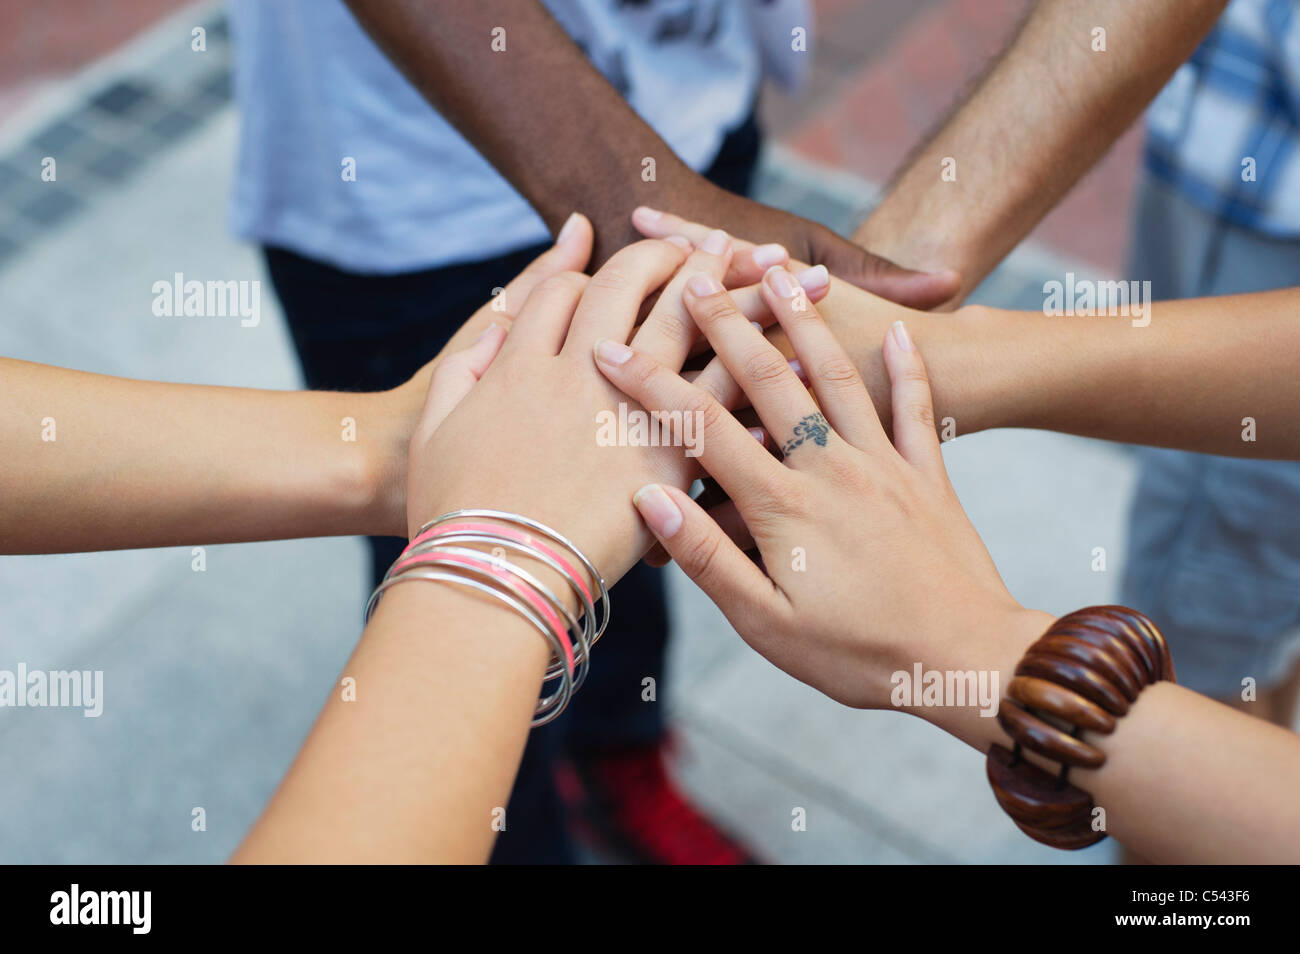 Close-up of human hands stacked upon one another - Stock Image